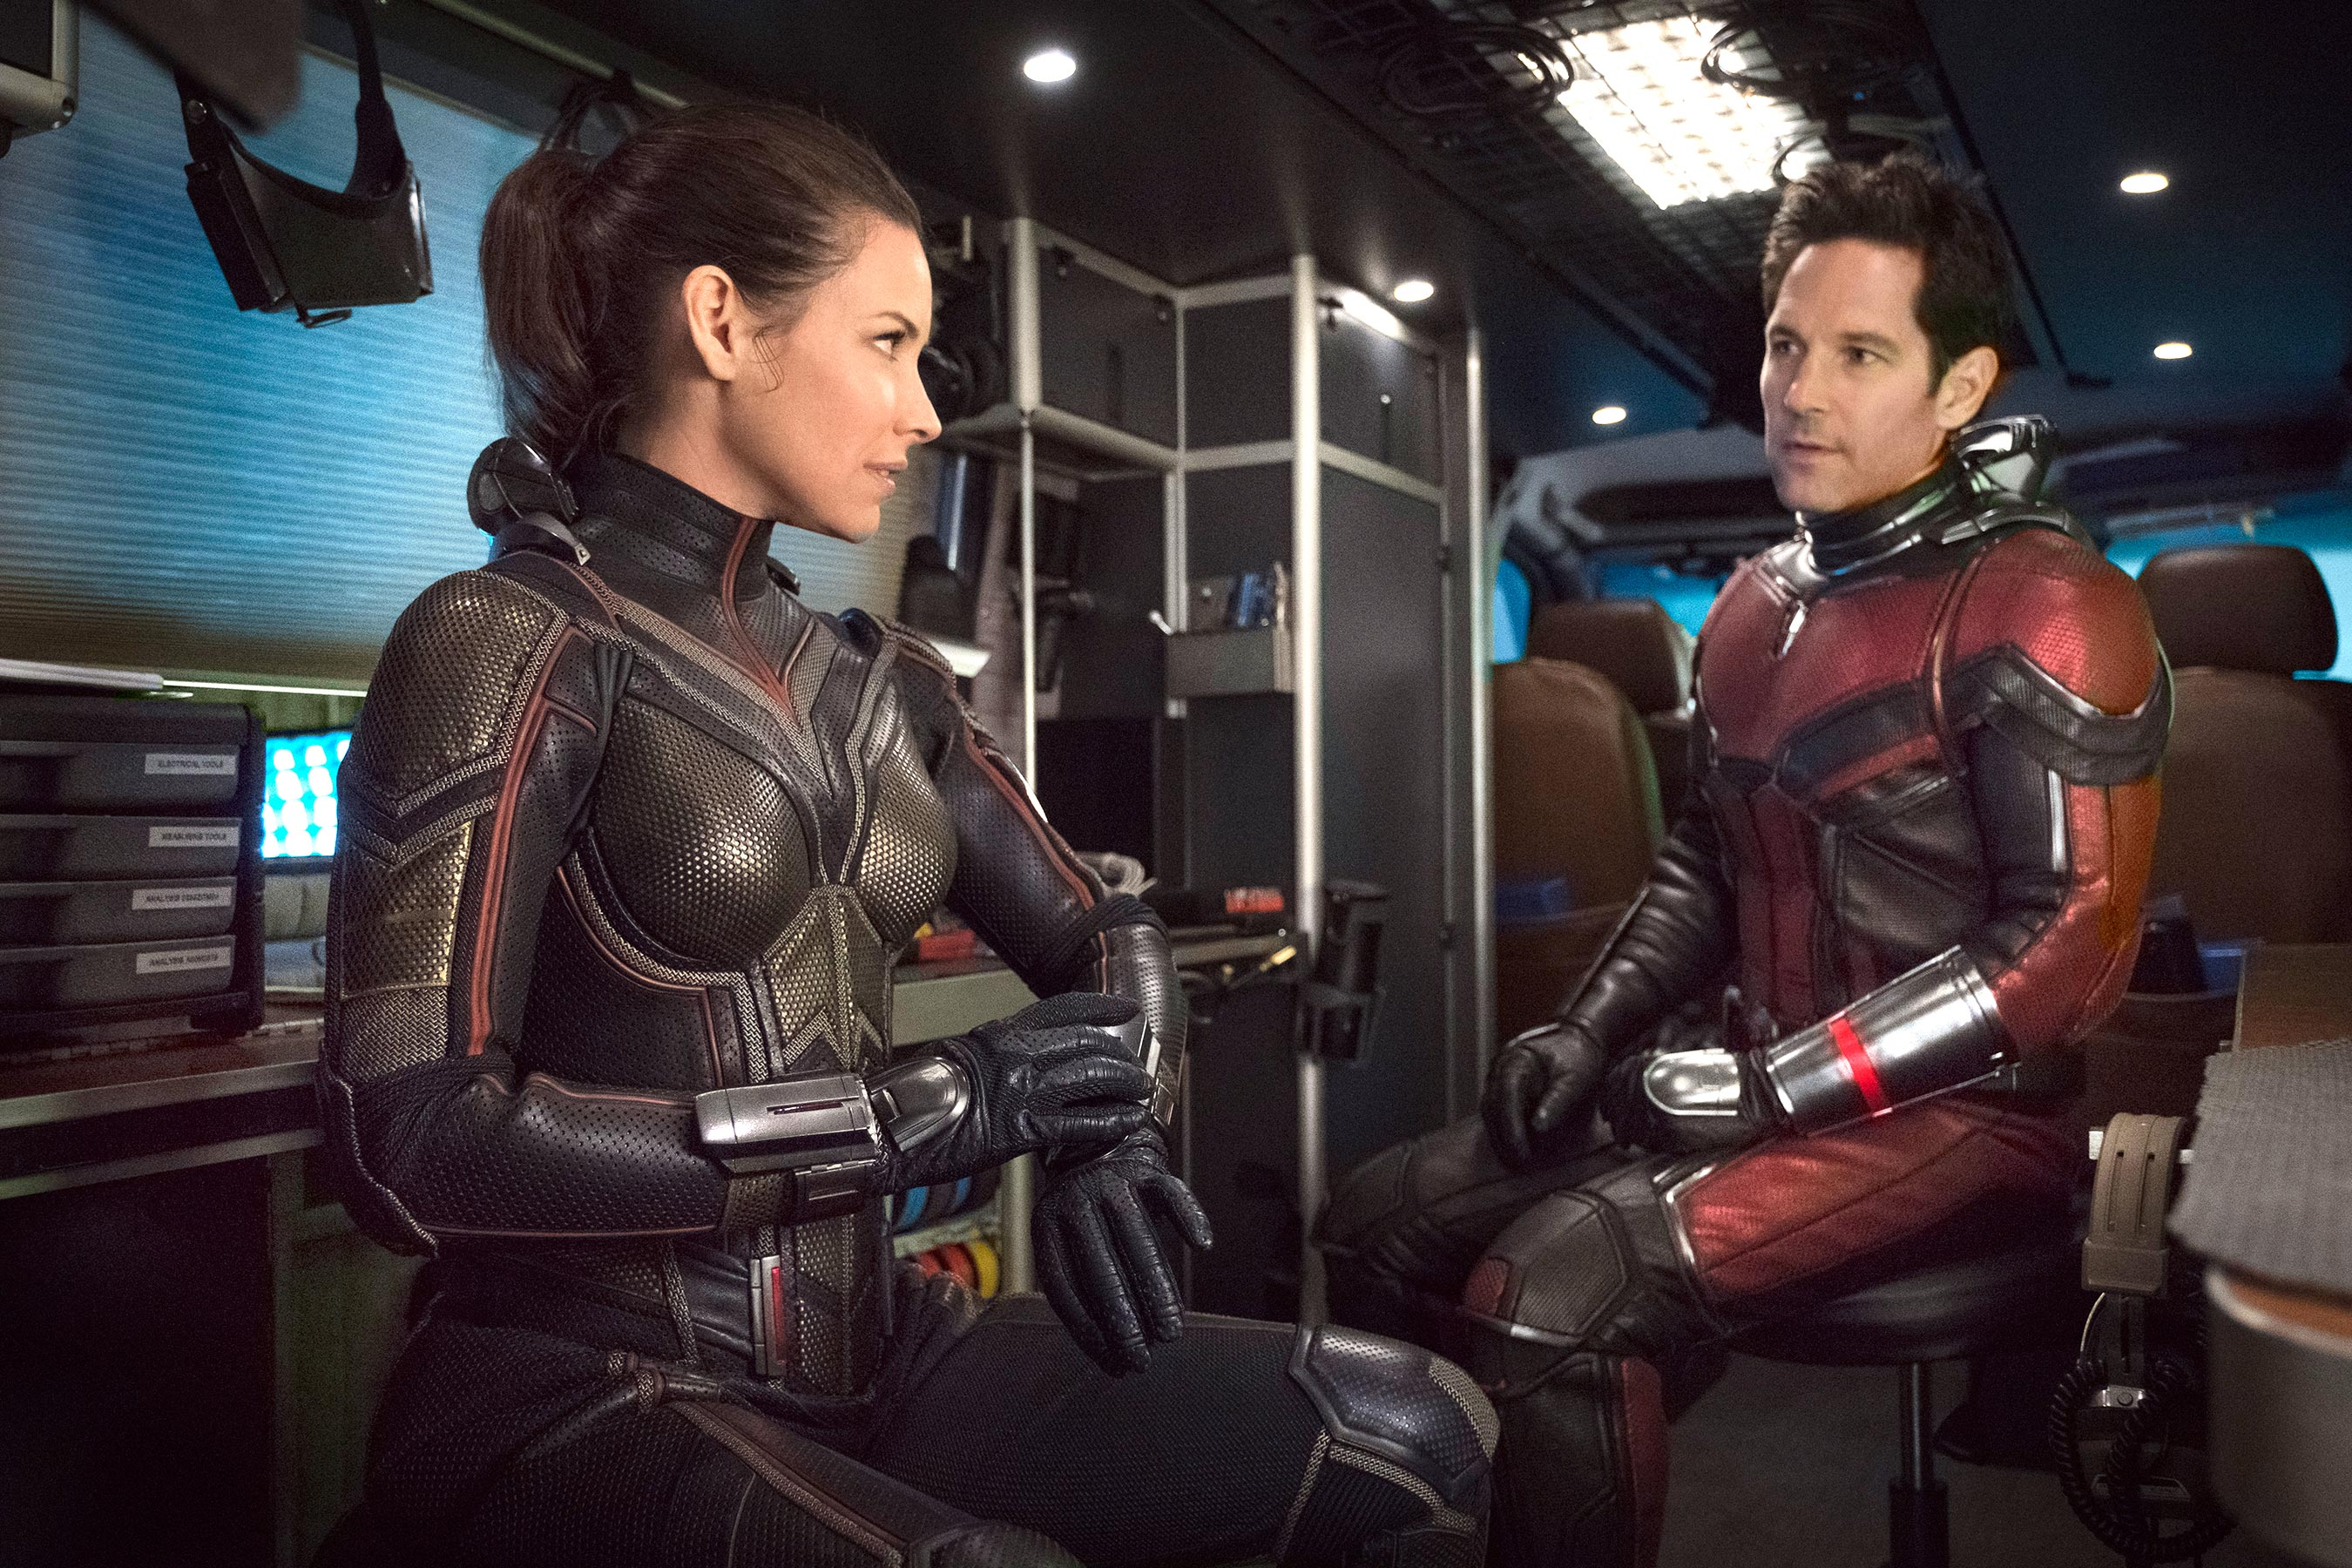 ant man and the wasp paul rudd evangeline lilly - Ant-Man and the Wasp: La Reseña Cinergetica